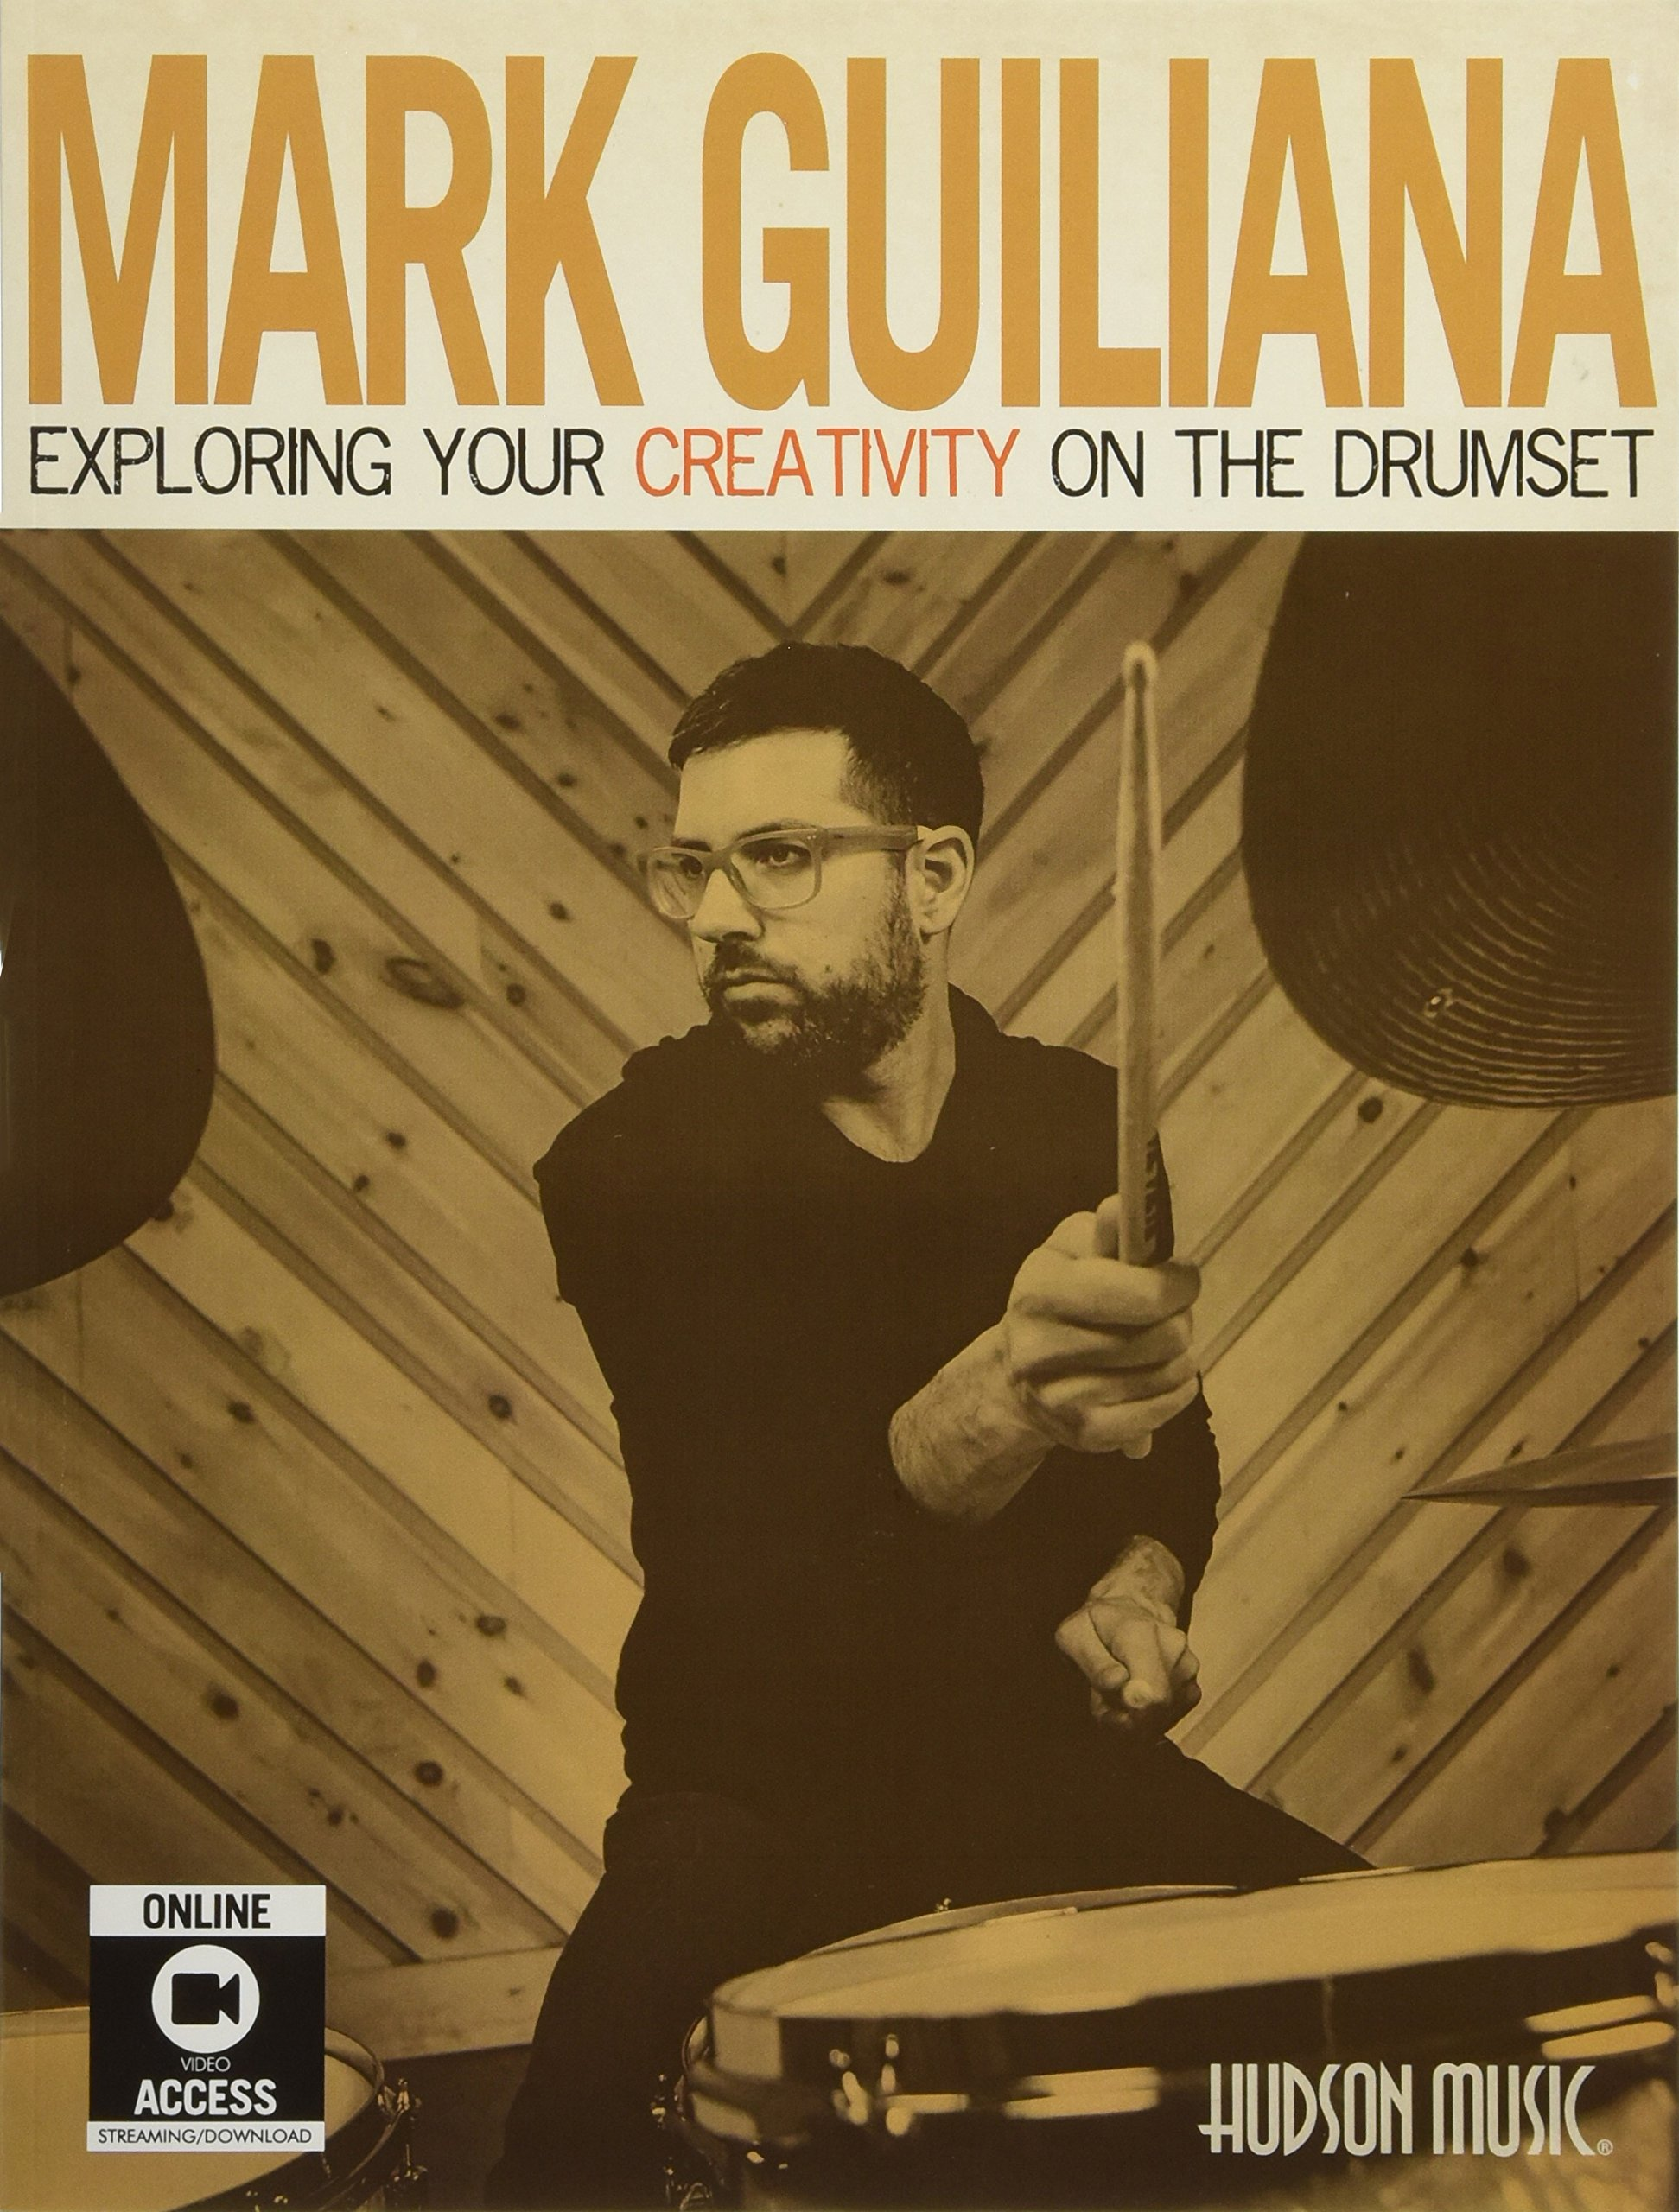 Exploring Your Creativity on the Drumset by Mark Guiliana